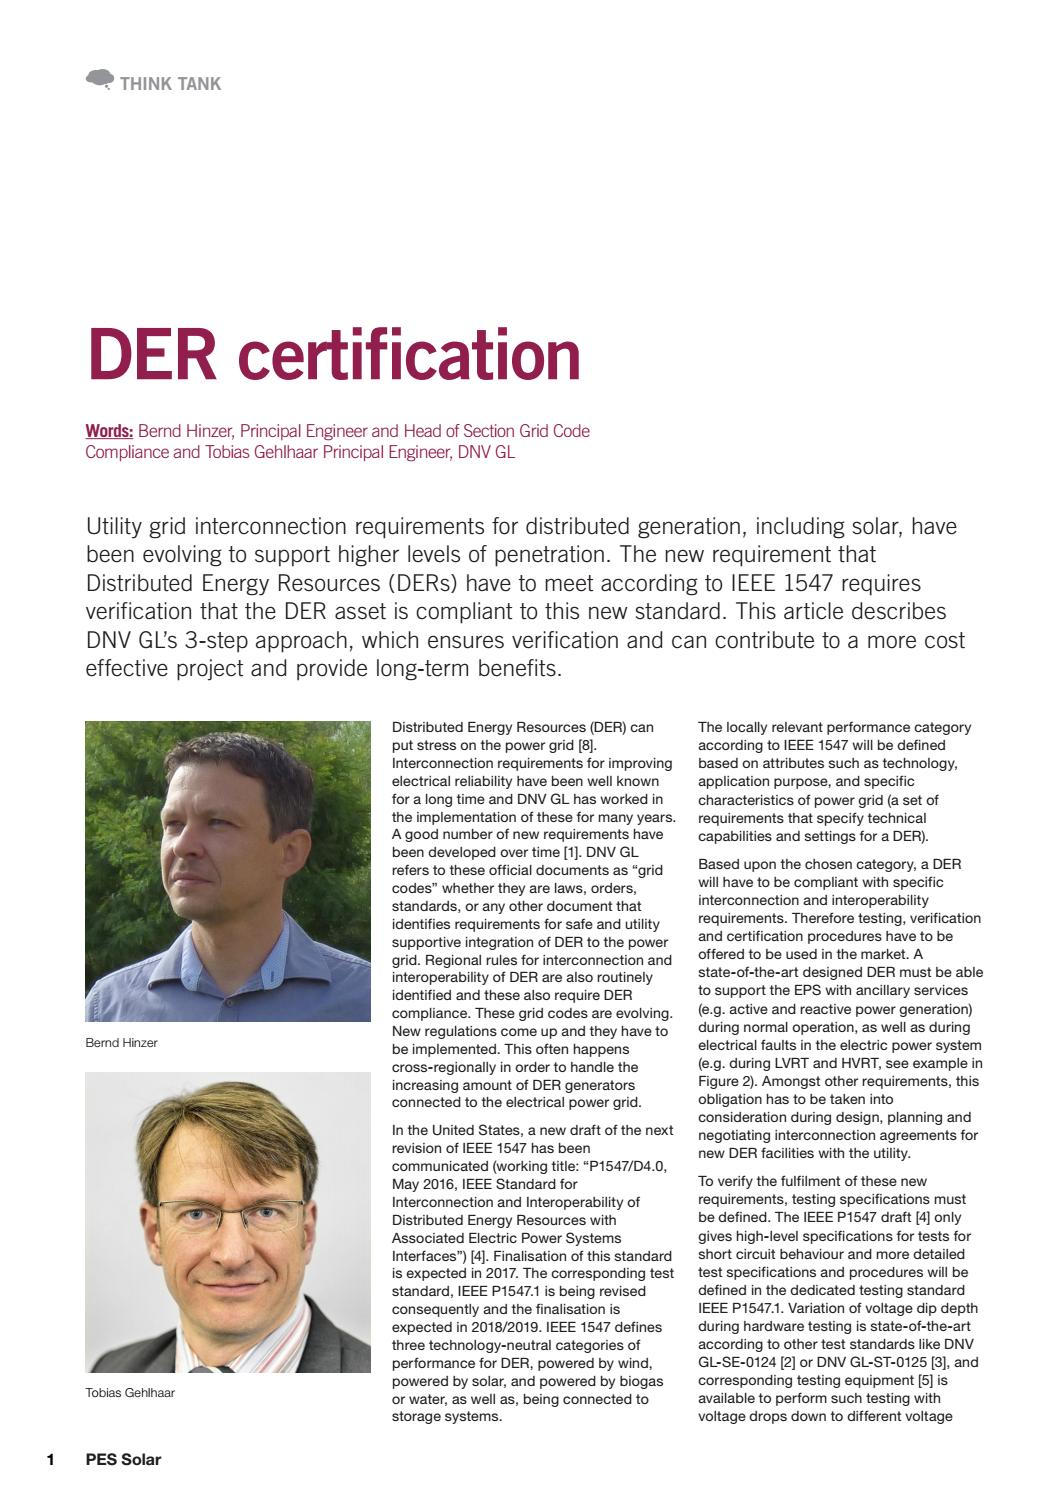 Pes Solar Der Certification Bylined Article 9 August 2016 By Dnv